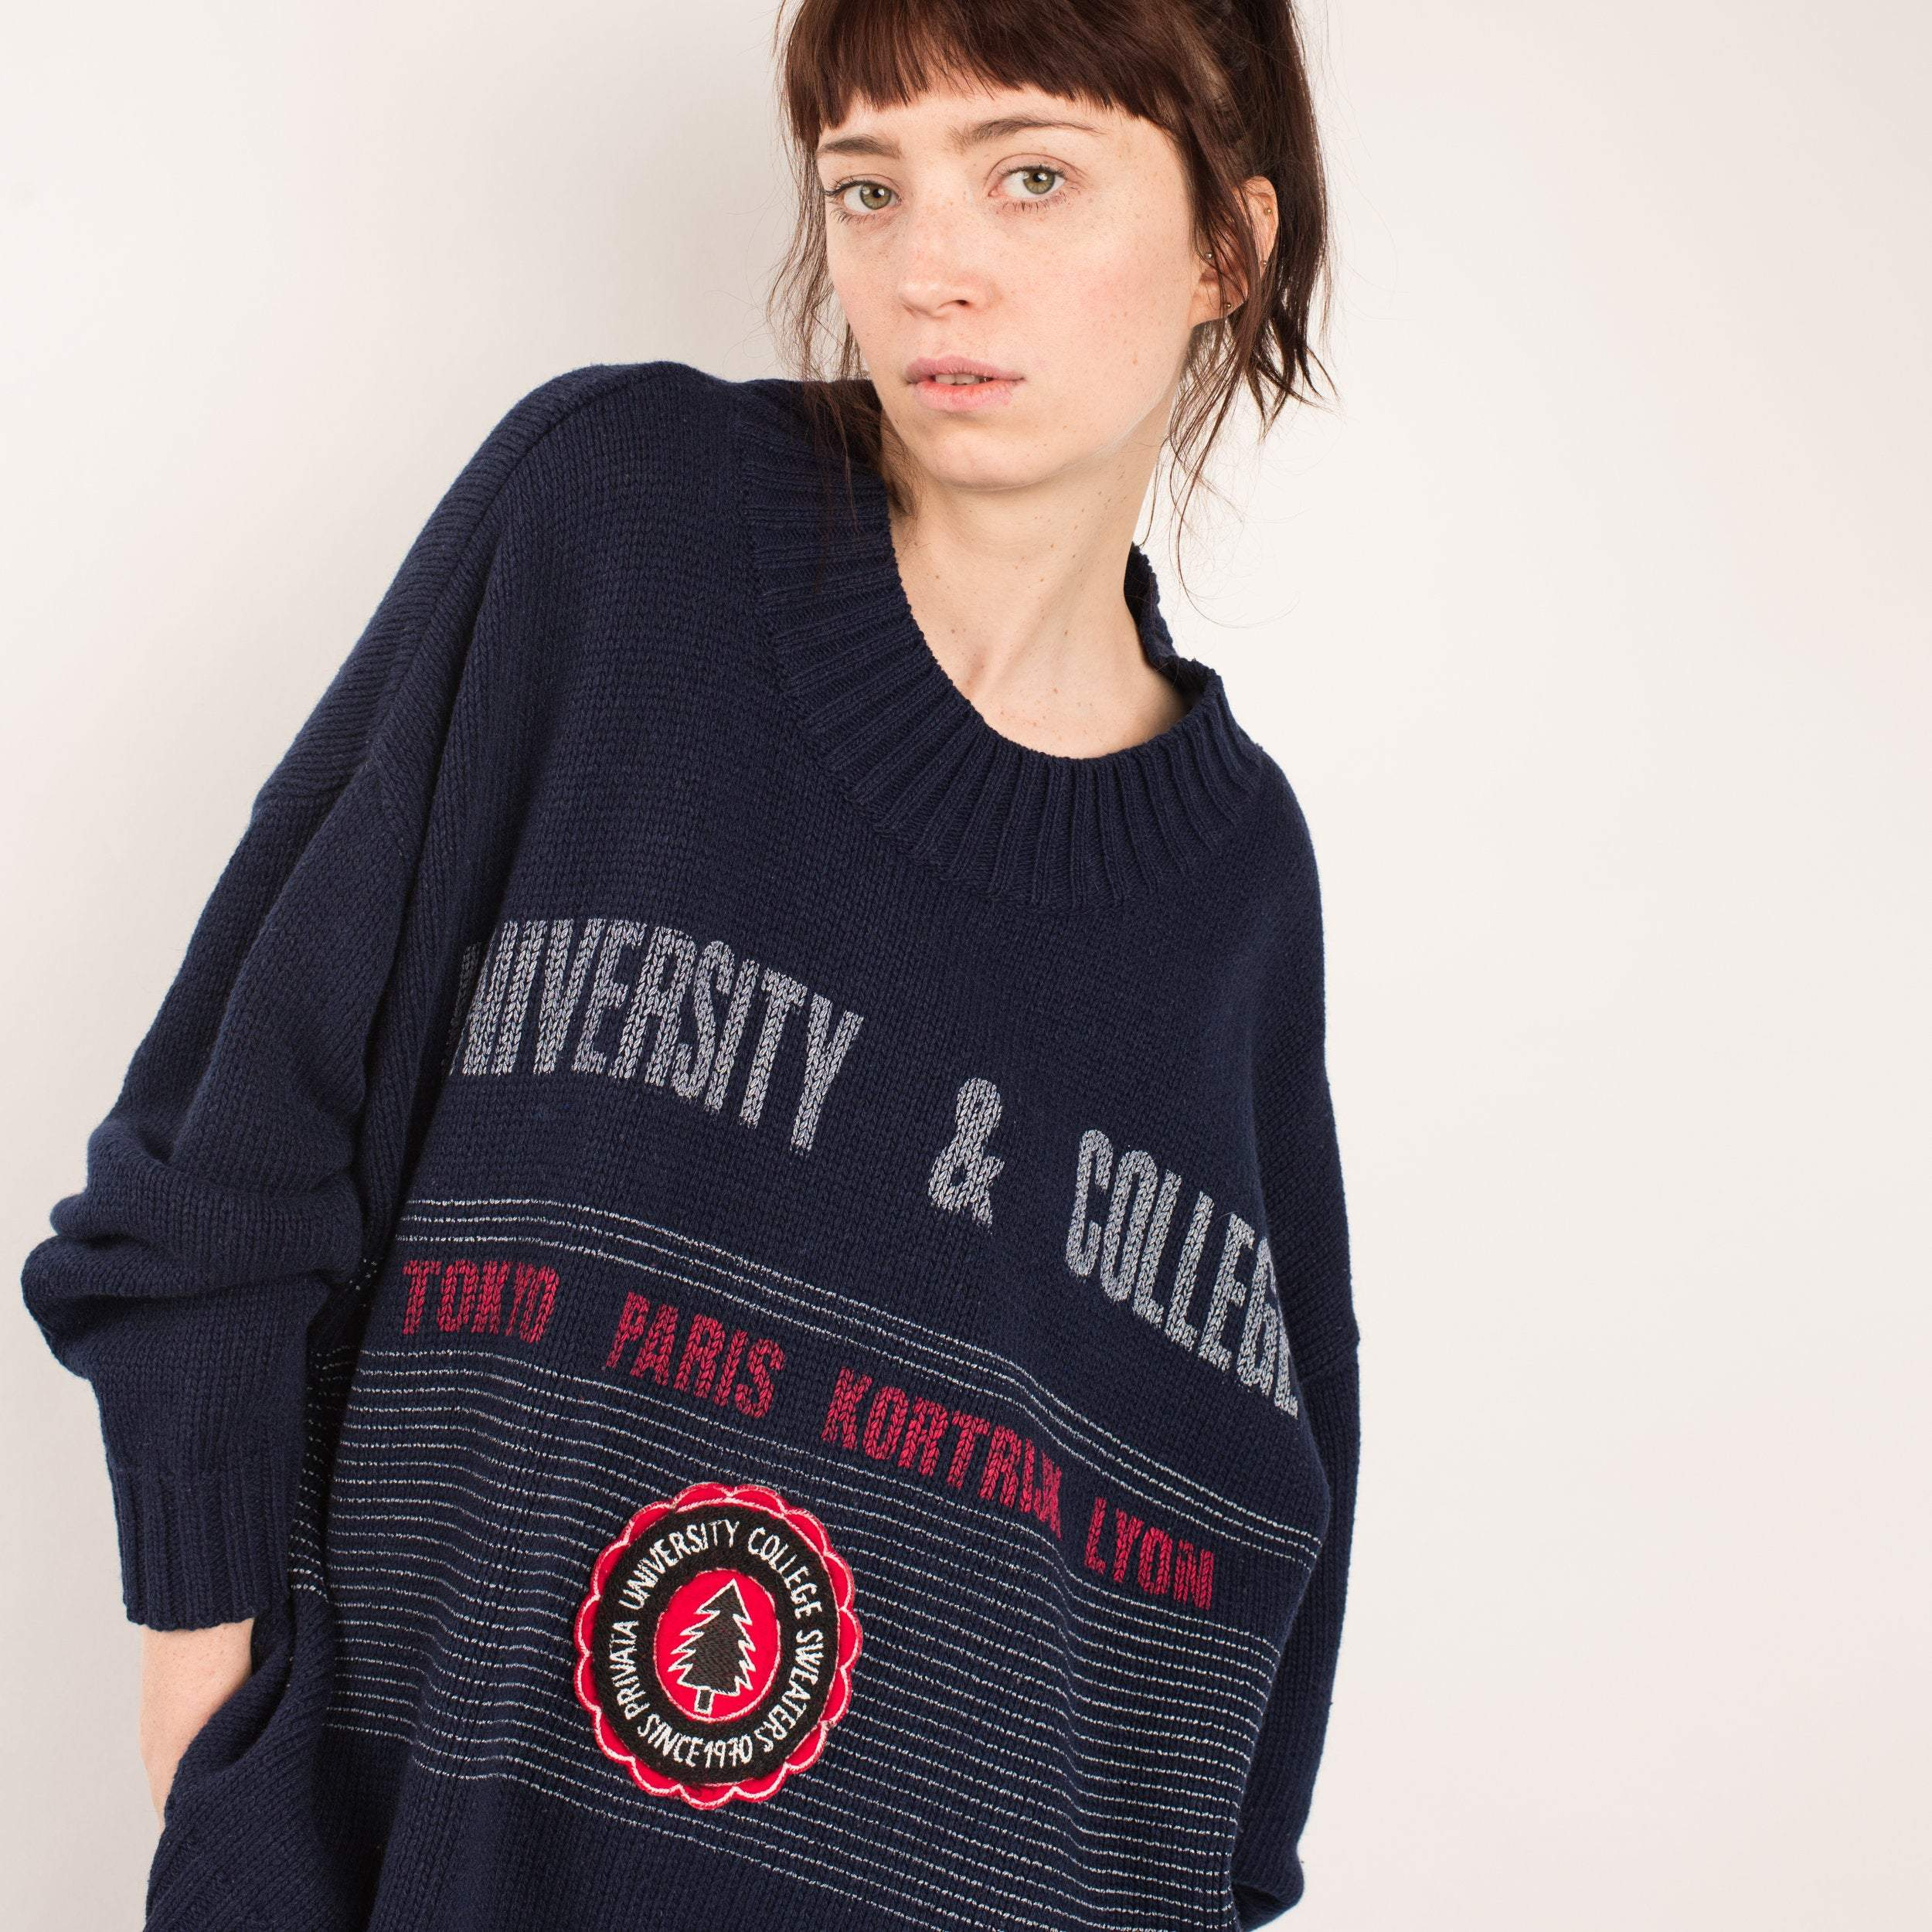 Vintage Oversized Navy UNIVERSITY COLLEGE Sweater /S/M/L